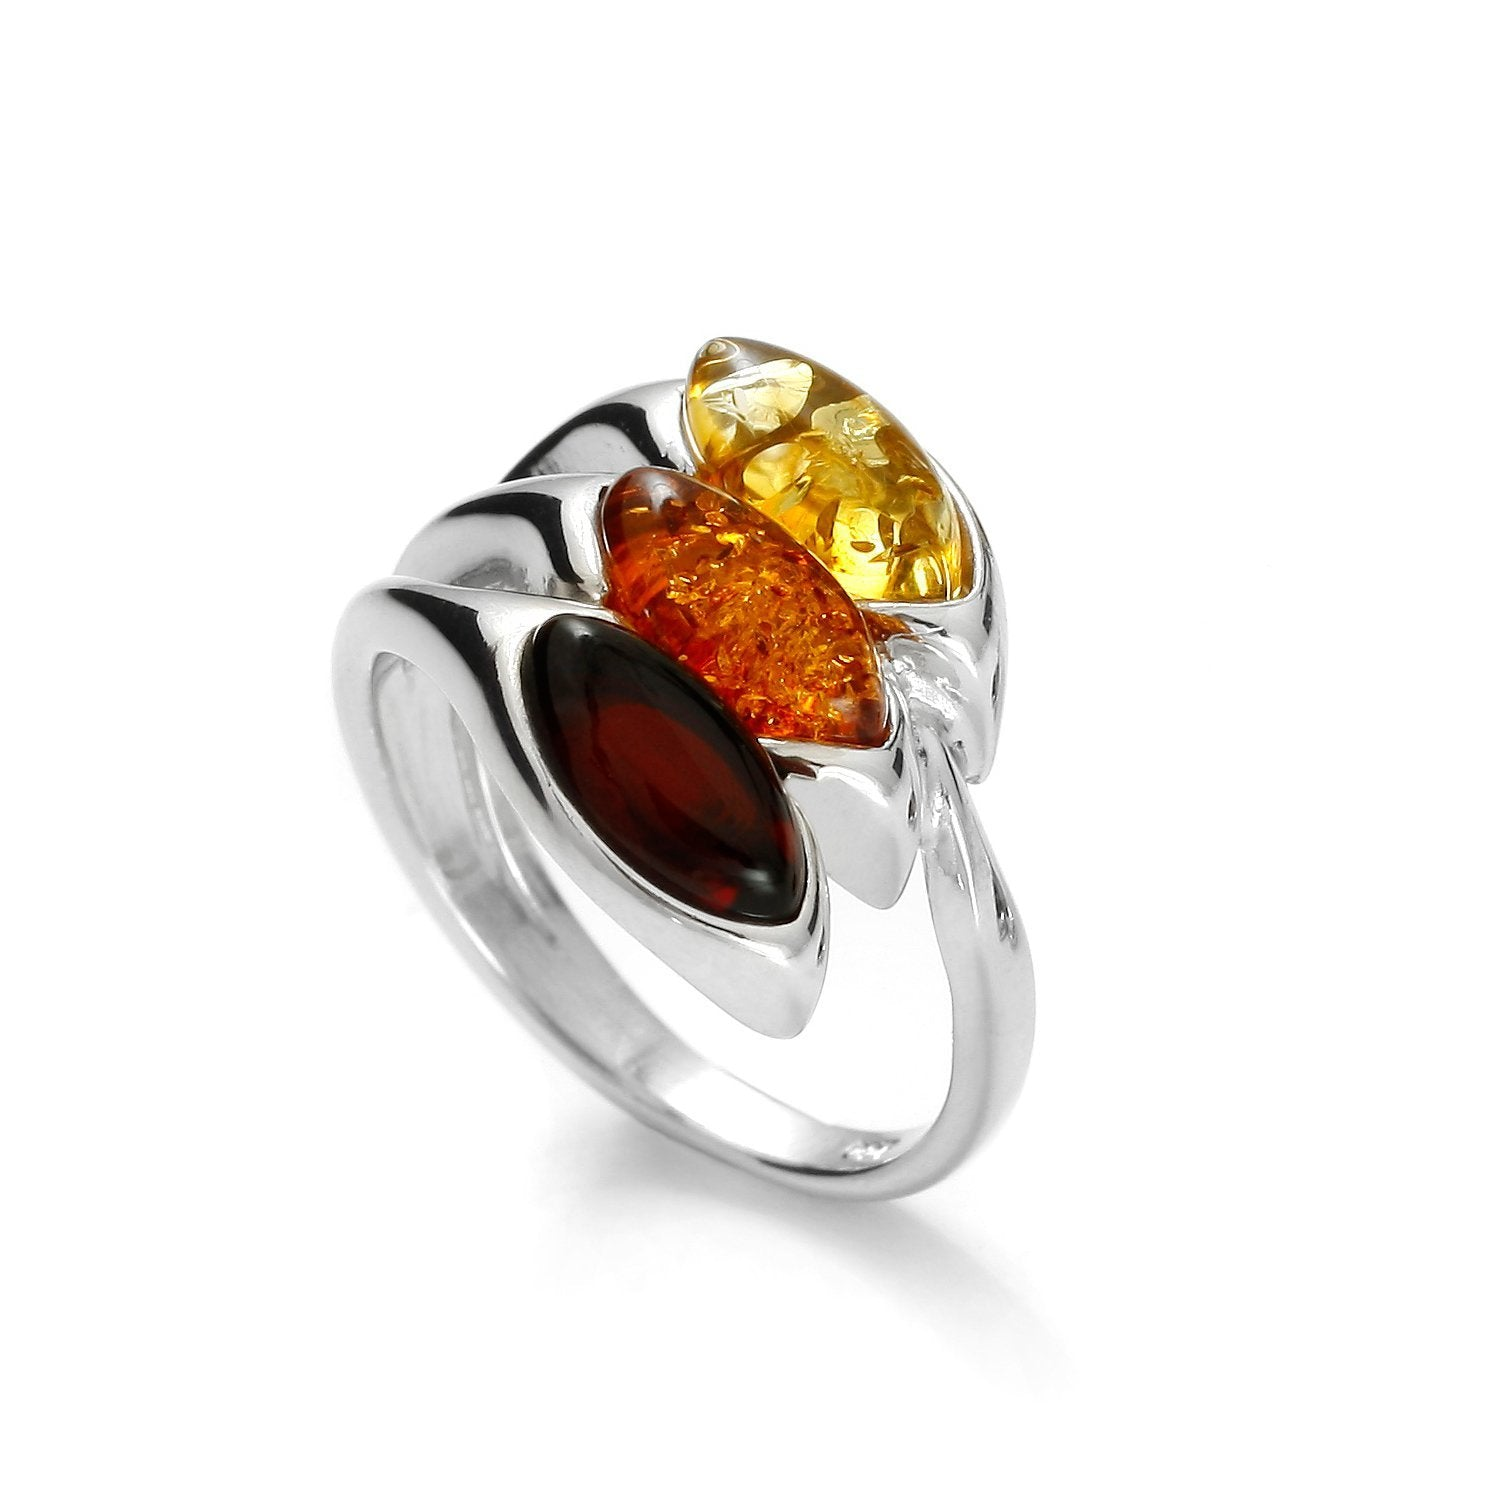 Tricolored Drops Ring - Koraba